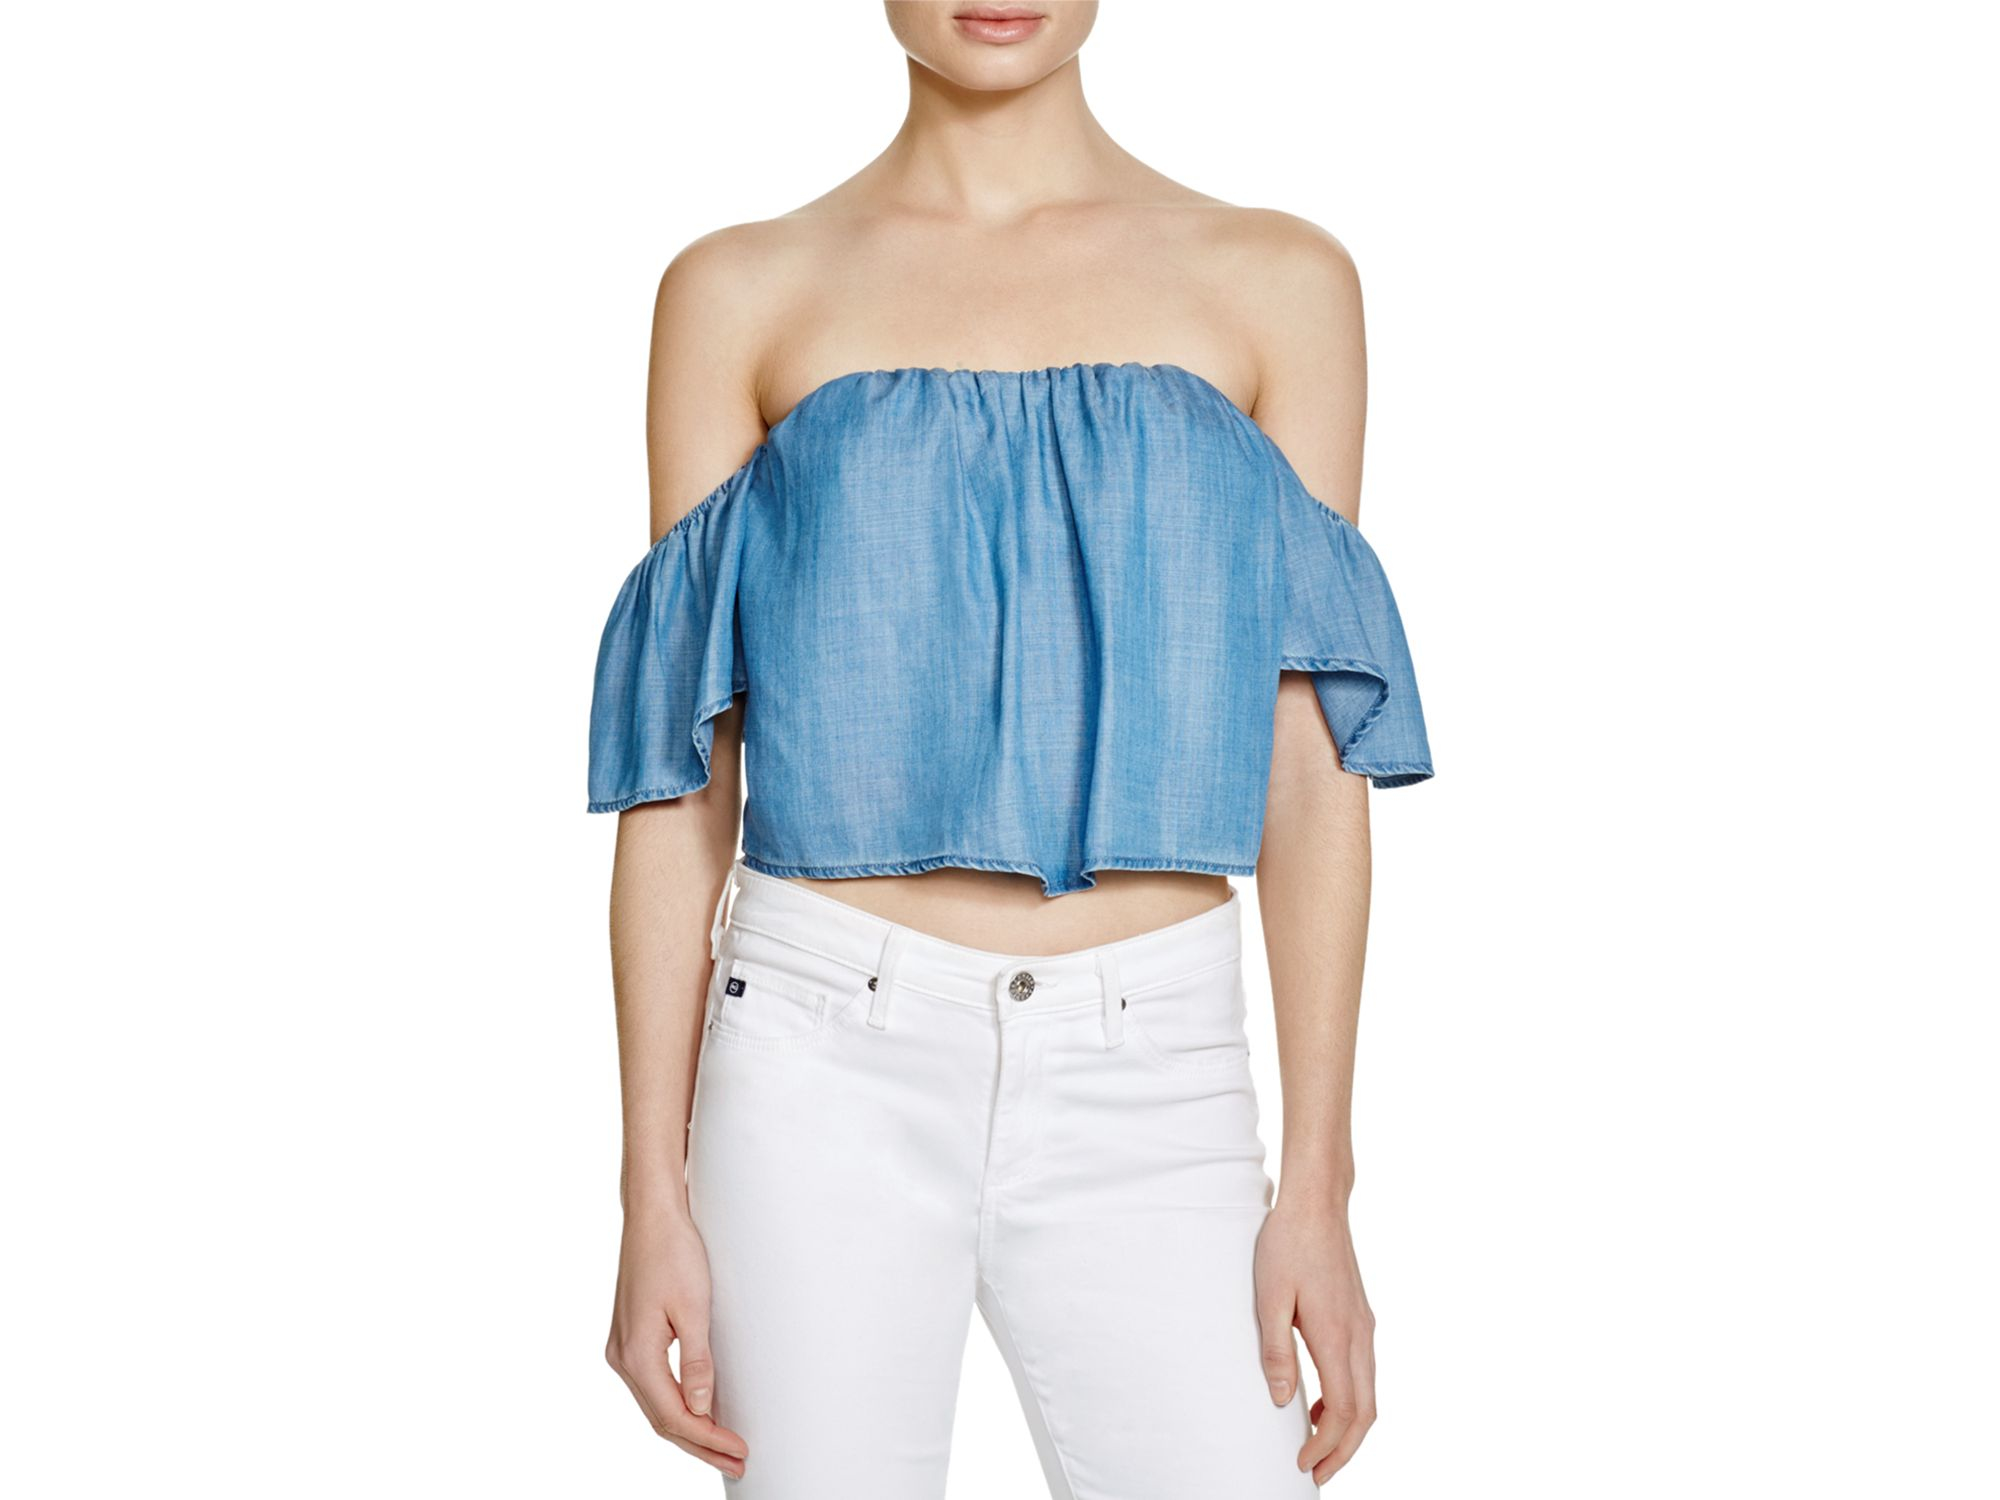 be8070c663e Lyst - Guess Chambray Corset Crop Top in Blue